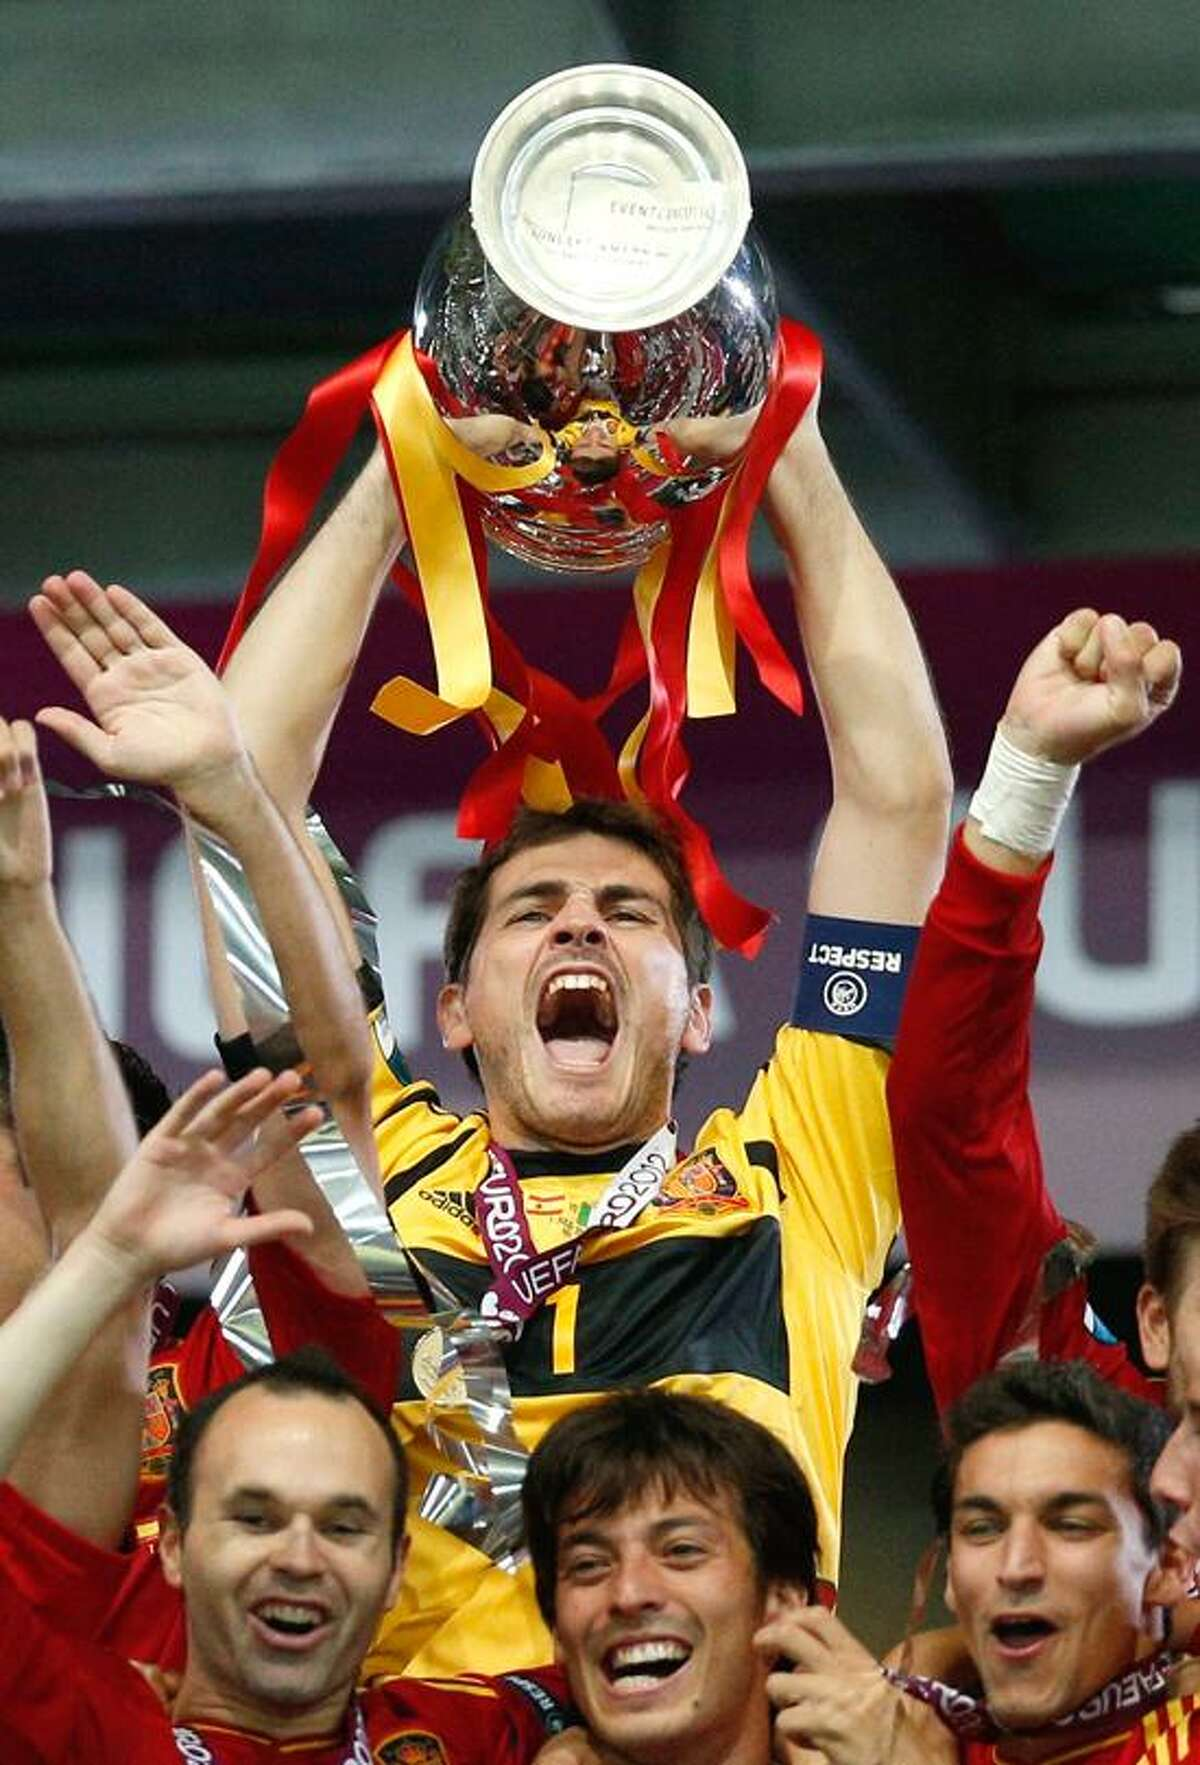 Spain goalkeeper Iker Casillas celebrate s with the trophy after the Euro 2012 soccer championship final between Spain and Italy in Kiev, Ukraine, Sunday, July 1, 2012. (AP Photo/Michael Sohn)